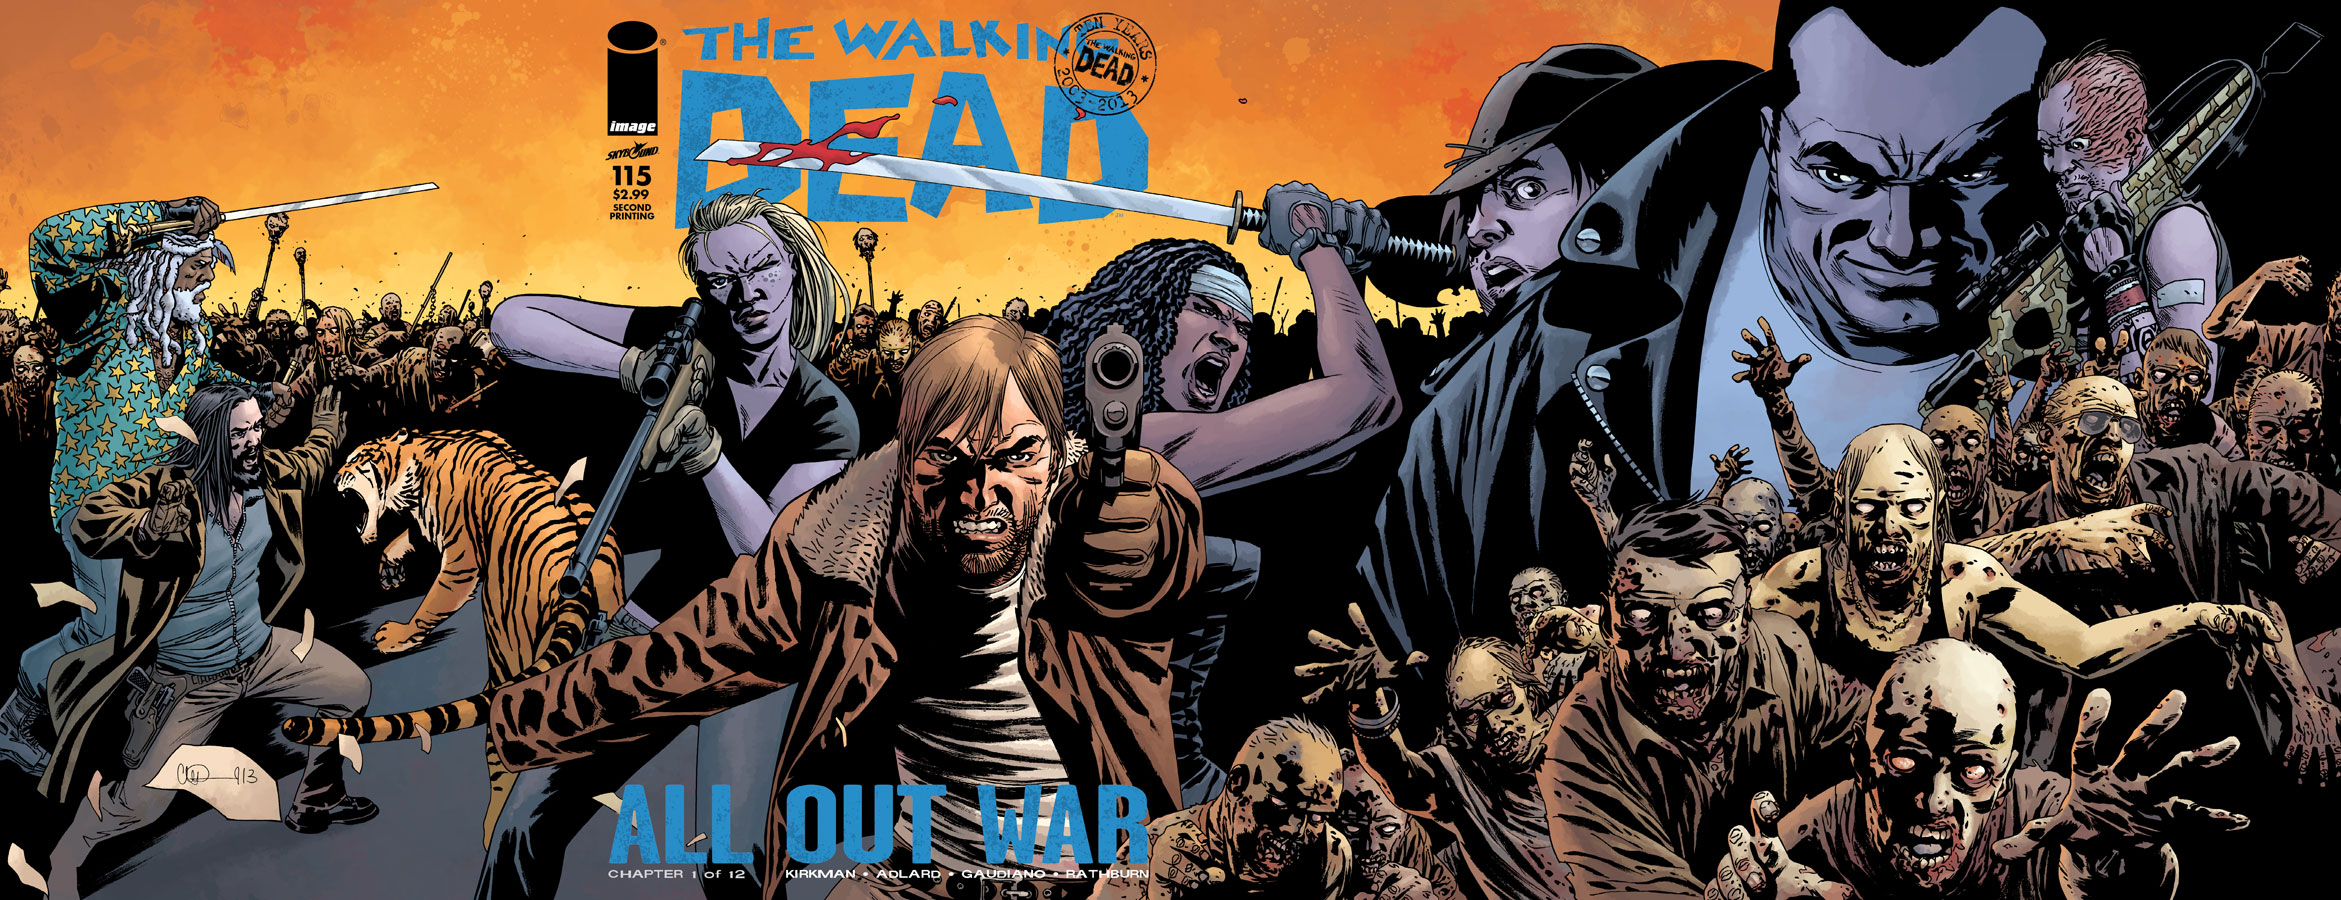 The Walking Dead All Comics